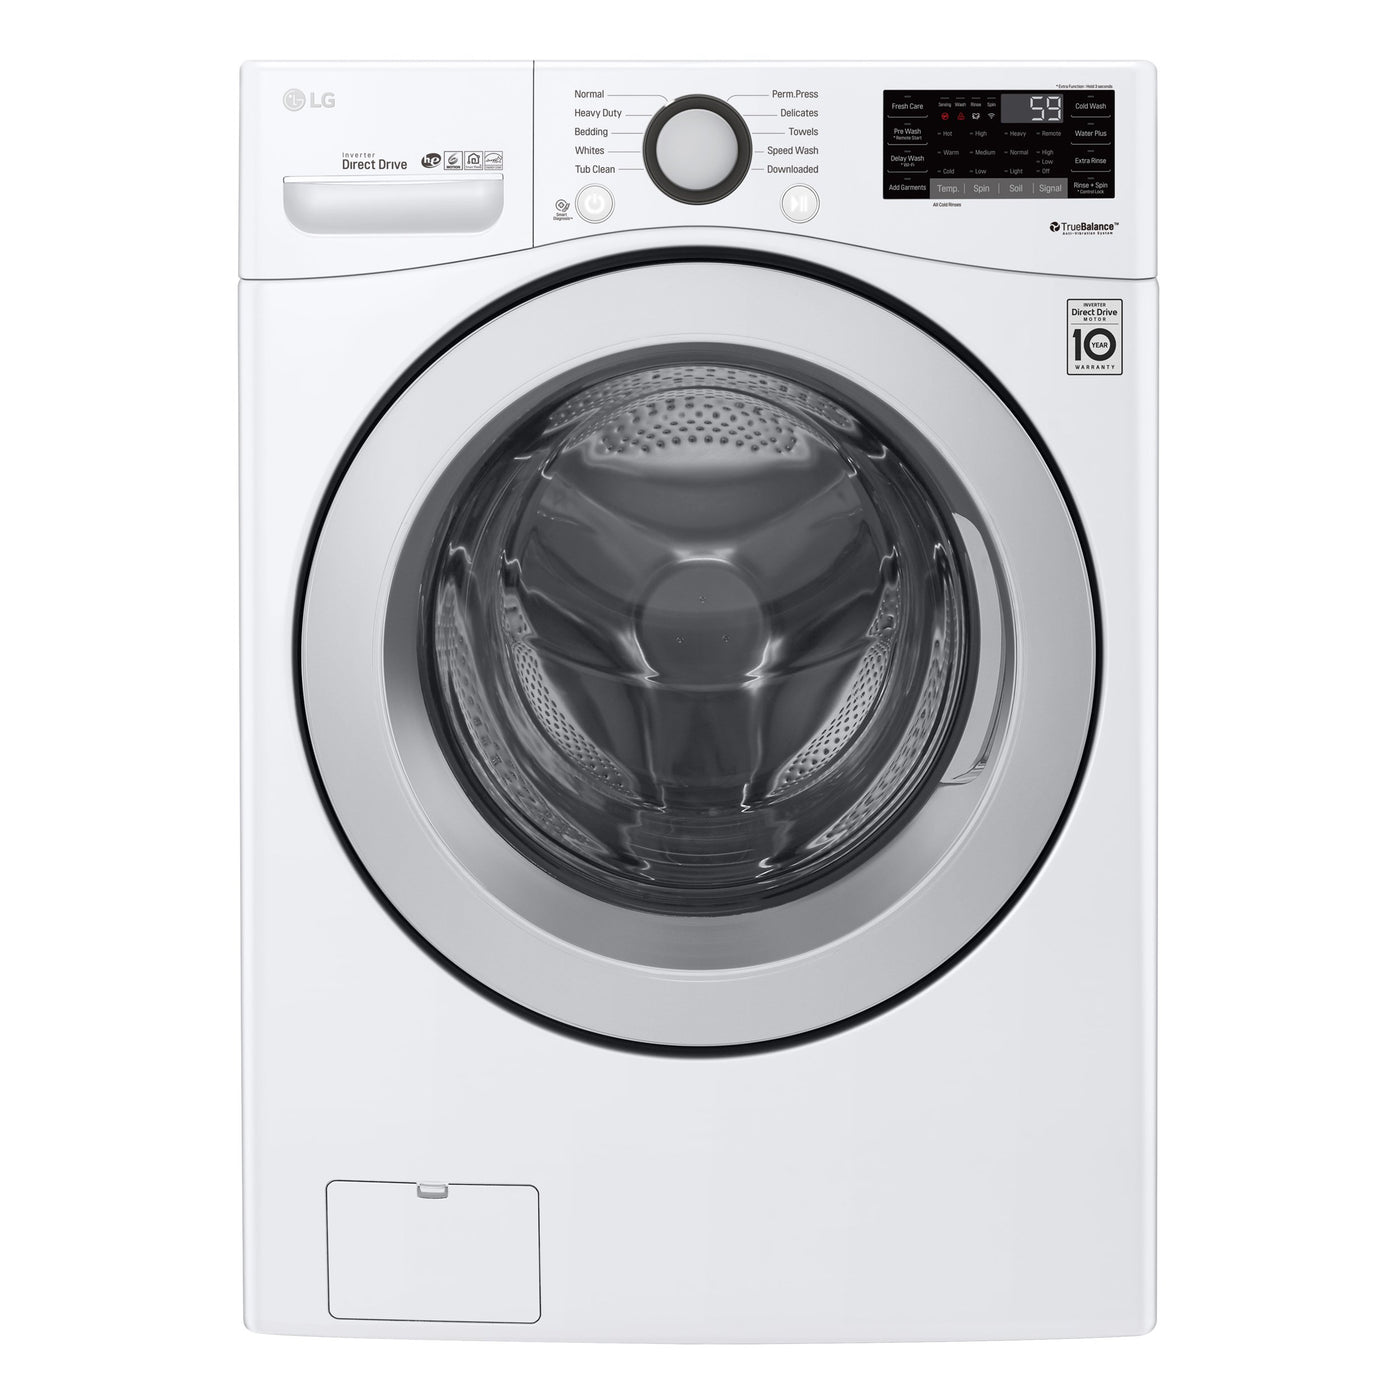 Lg Appliance White Front-Load Washer (9.9 Cu. Ft.) - WM3900CW